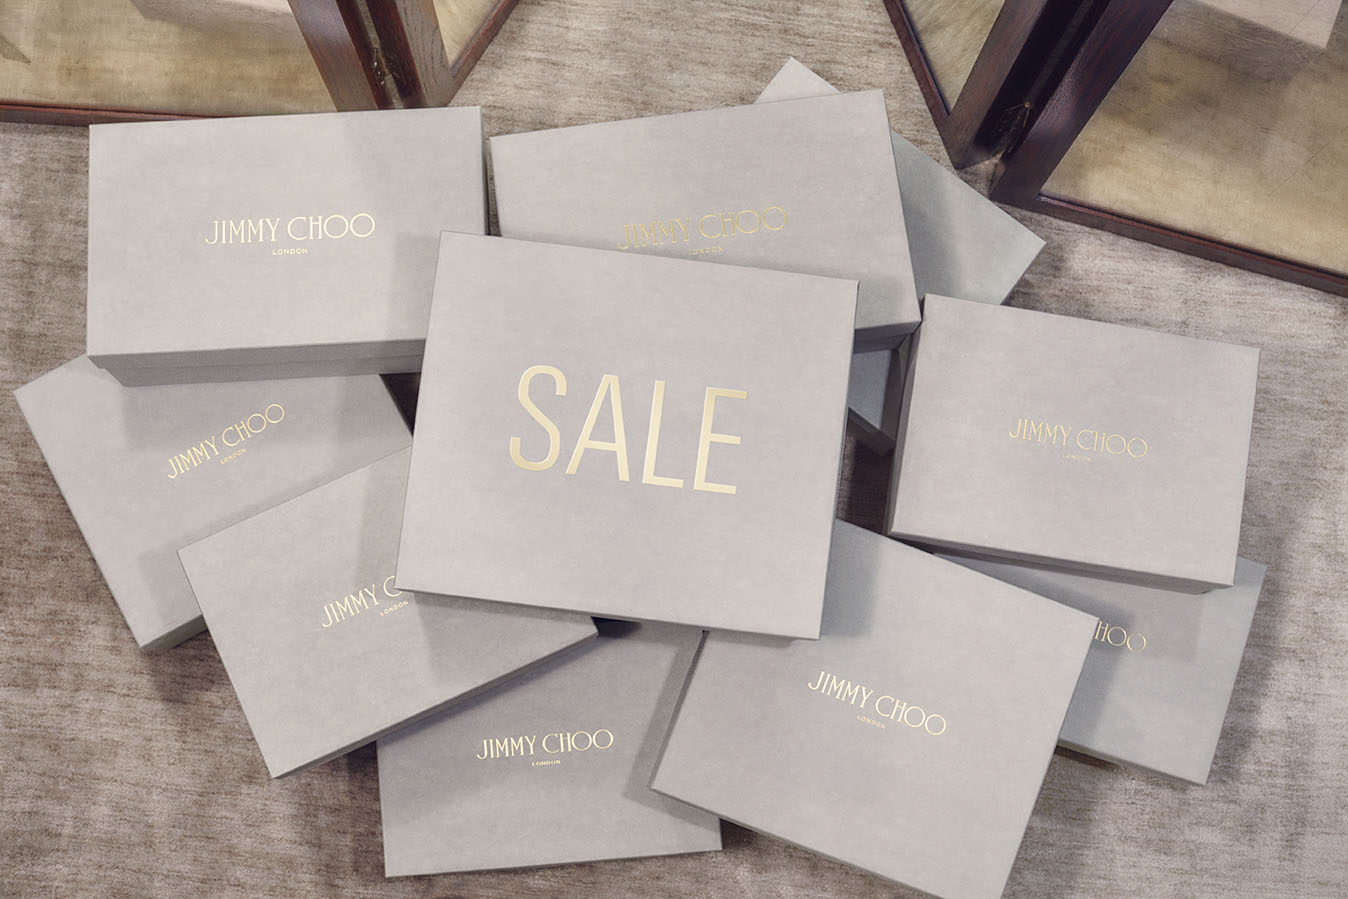 Enjoy 40% off select styles from Jimmy Choo